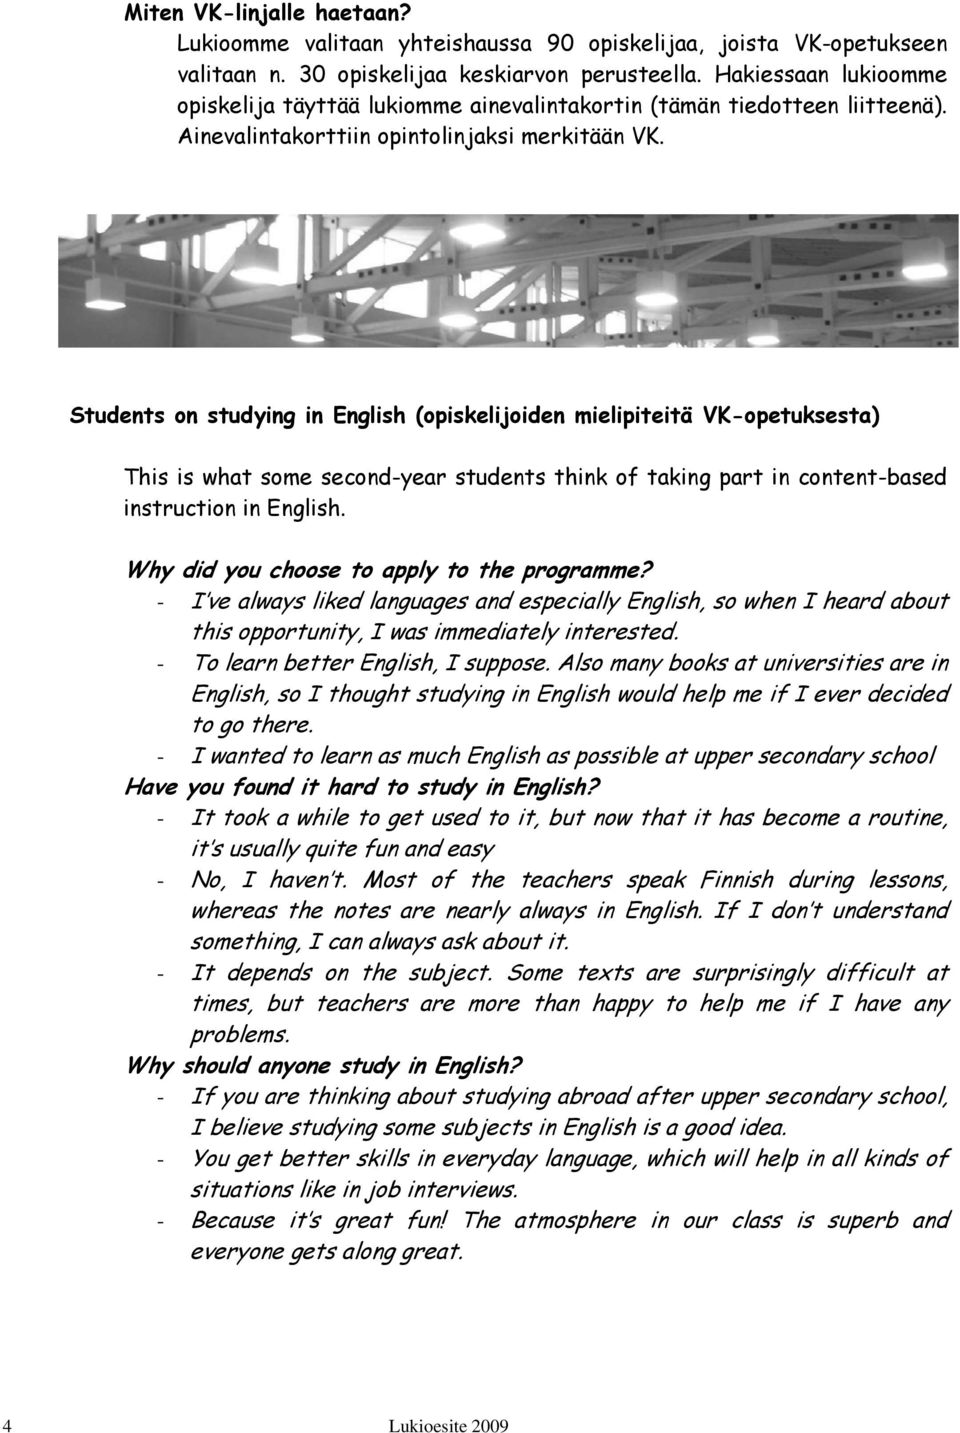 Students on studying in English (opiskelijoiden mielipiteitä VK-opetuksesta) This is what some second-year students think of taking part in content-based instruction in English.